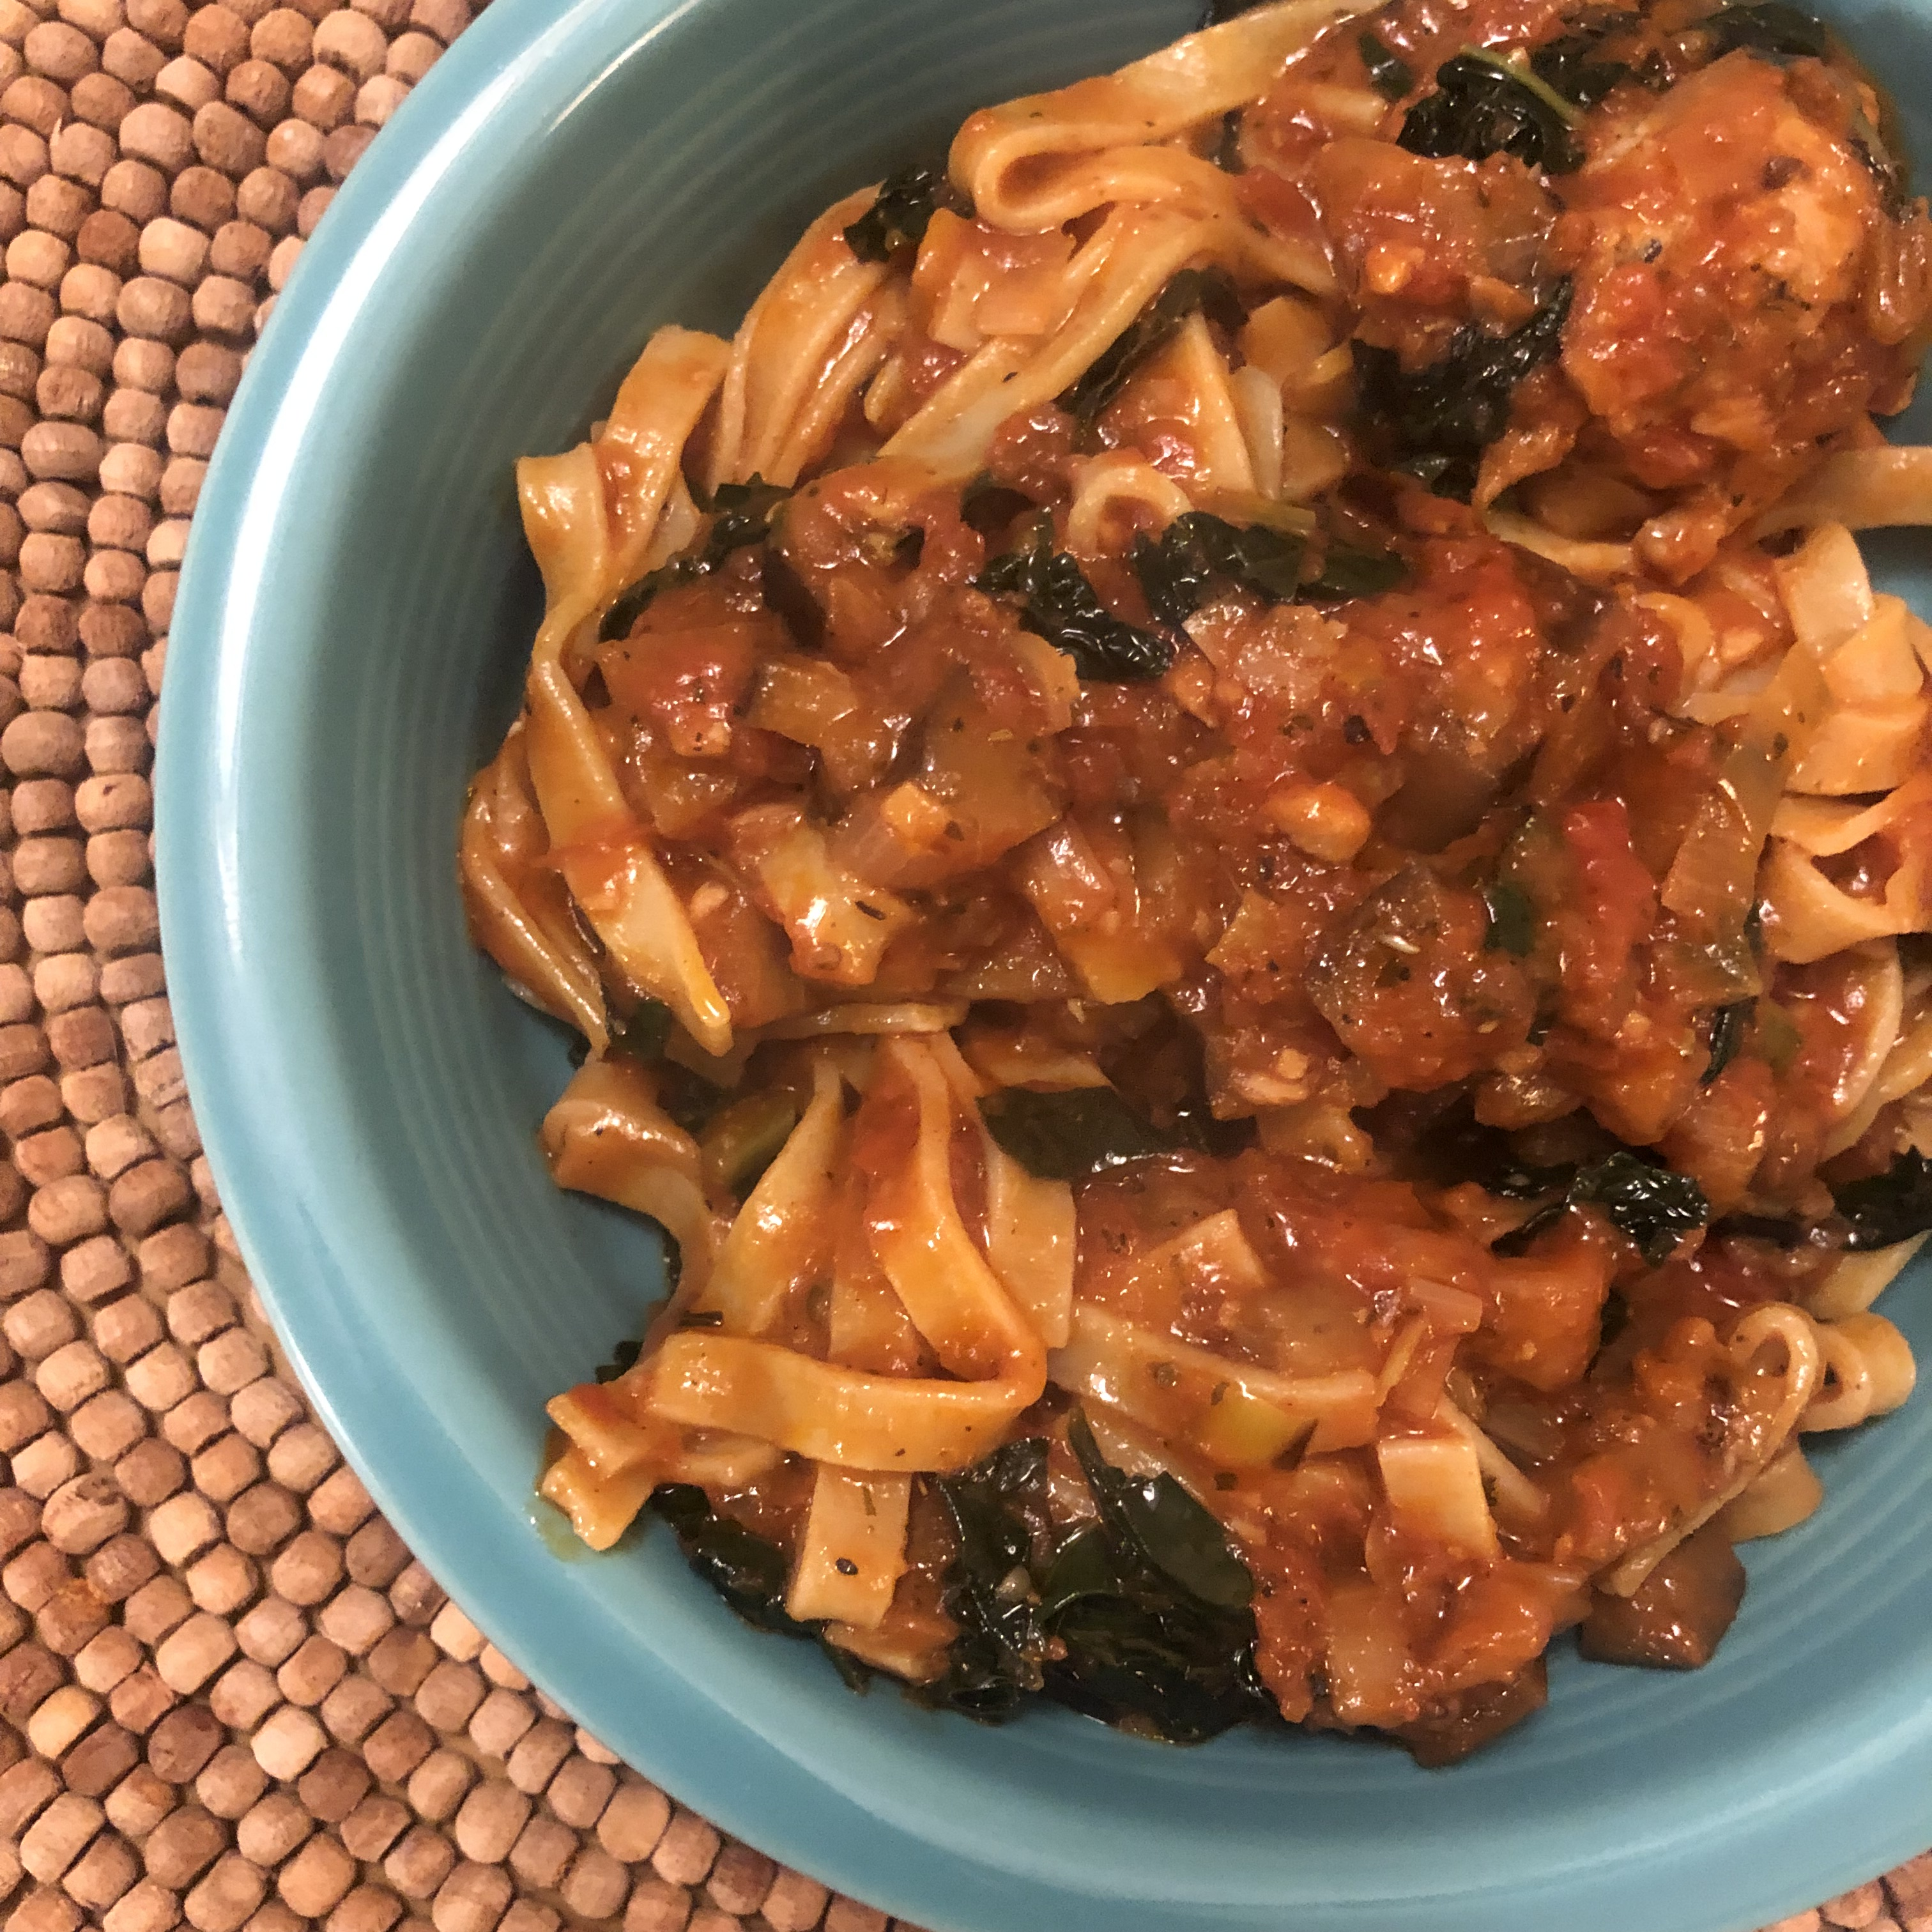 Chicken Meatballs with Eggplant, Leek and Kale Ragu over Almond Flour Fettuccine in a blue bowl.